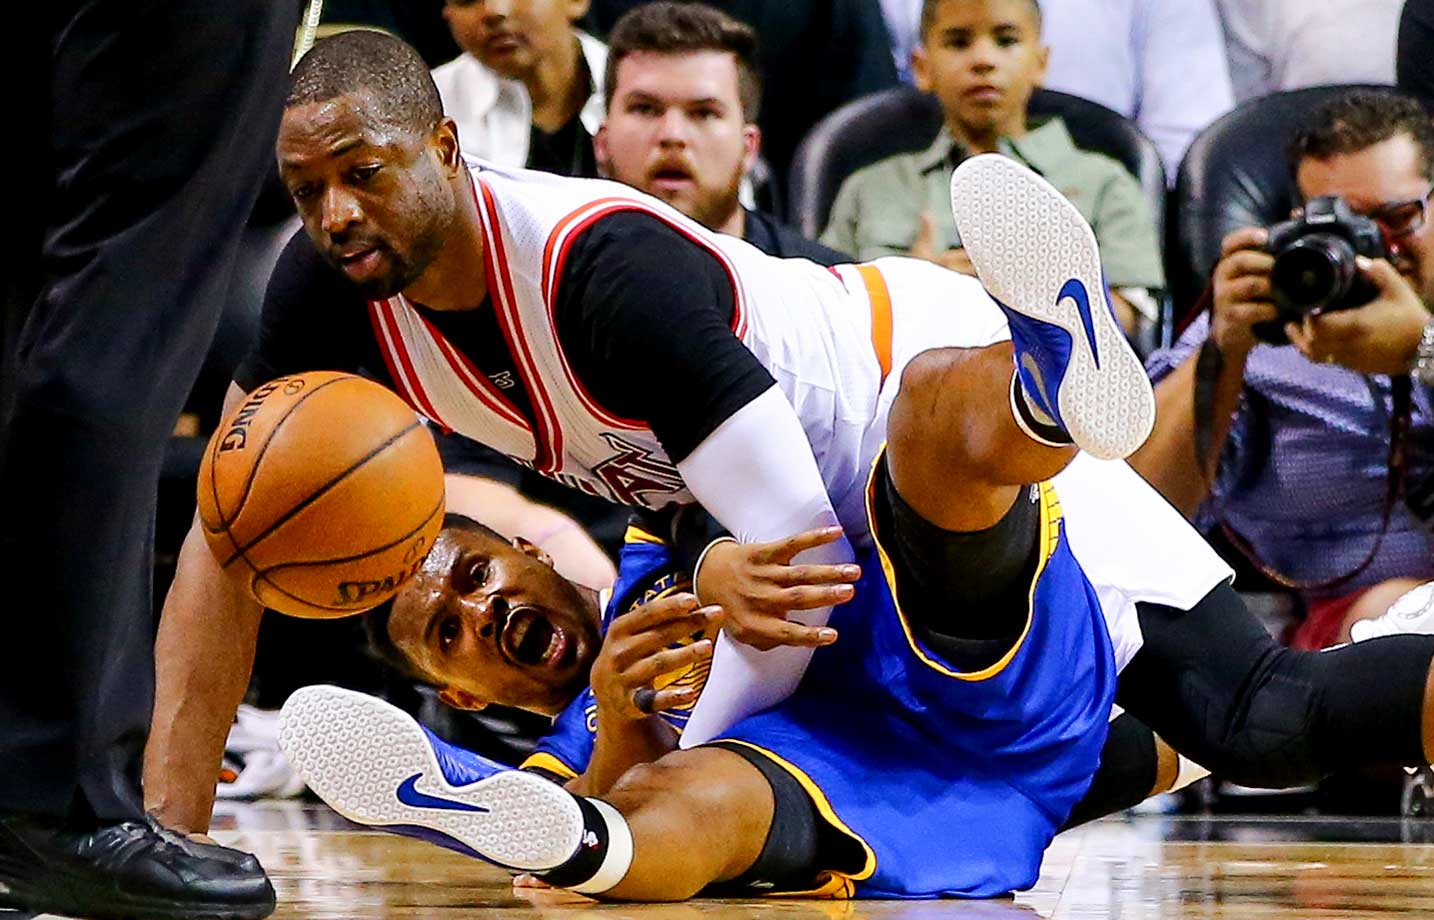 Dwyane Wade of the Miami Heat and Leandro Barbosa of Golden State Warriors get tangled up.